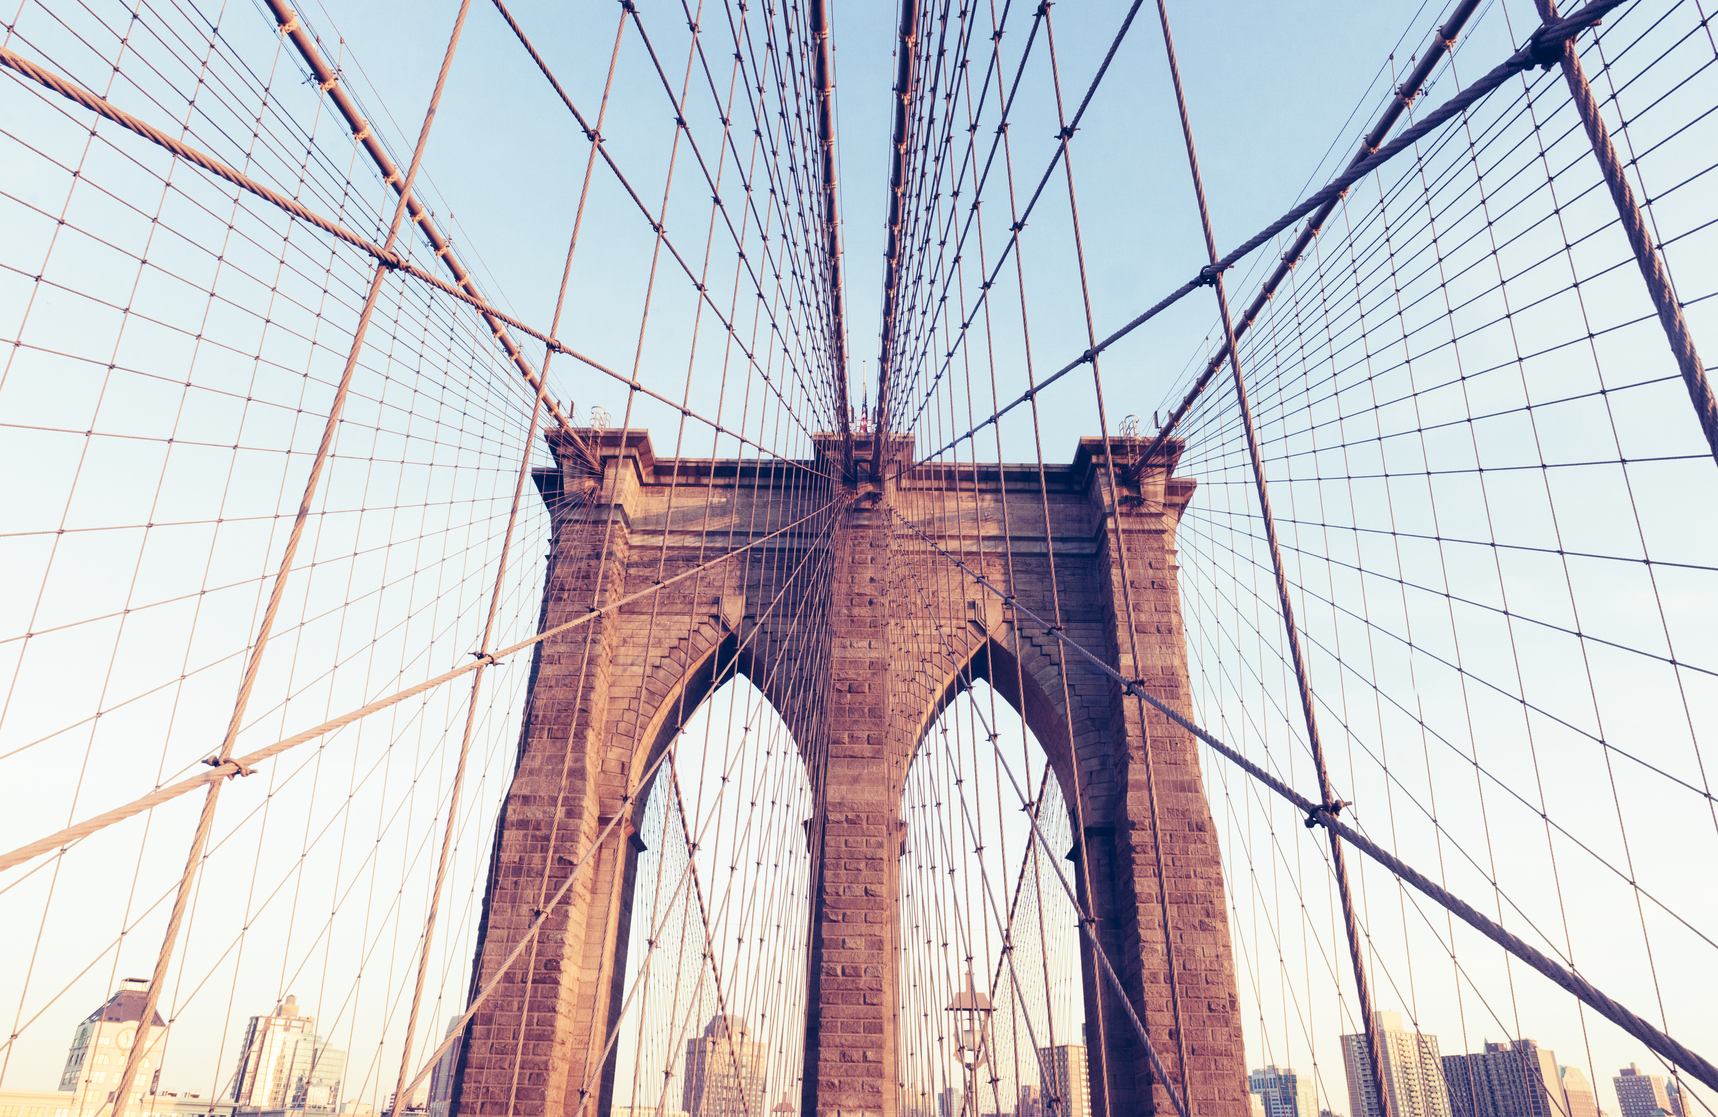 This is a color, horizontal, royalty free stock photograph of the famous, historic landmark, the Brooklyn Bridge in New York City. The iconic location connects the Borough of Brooklyn to the island of Manhattan. Suspension cables span out in all directions from the double arches.